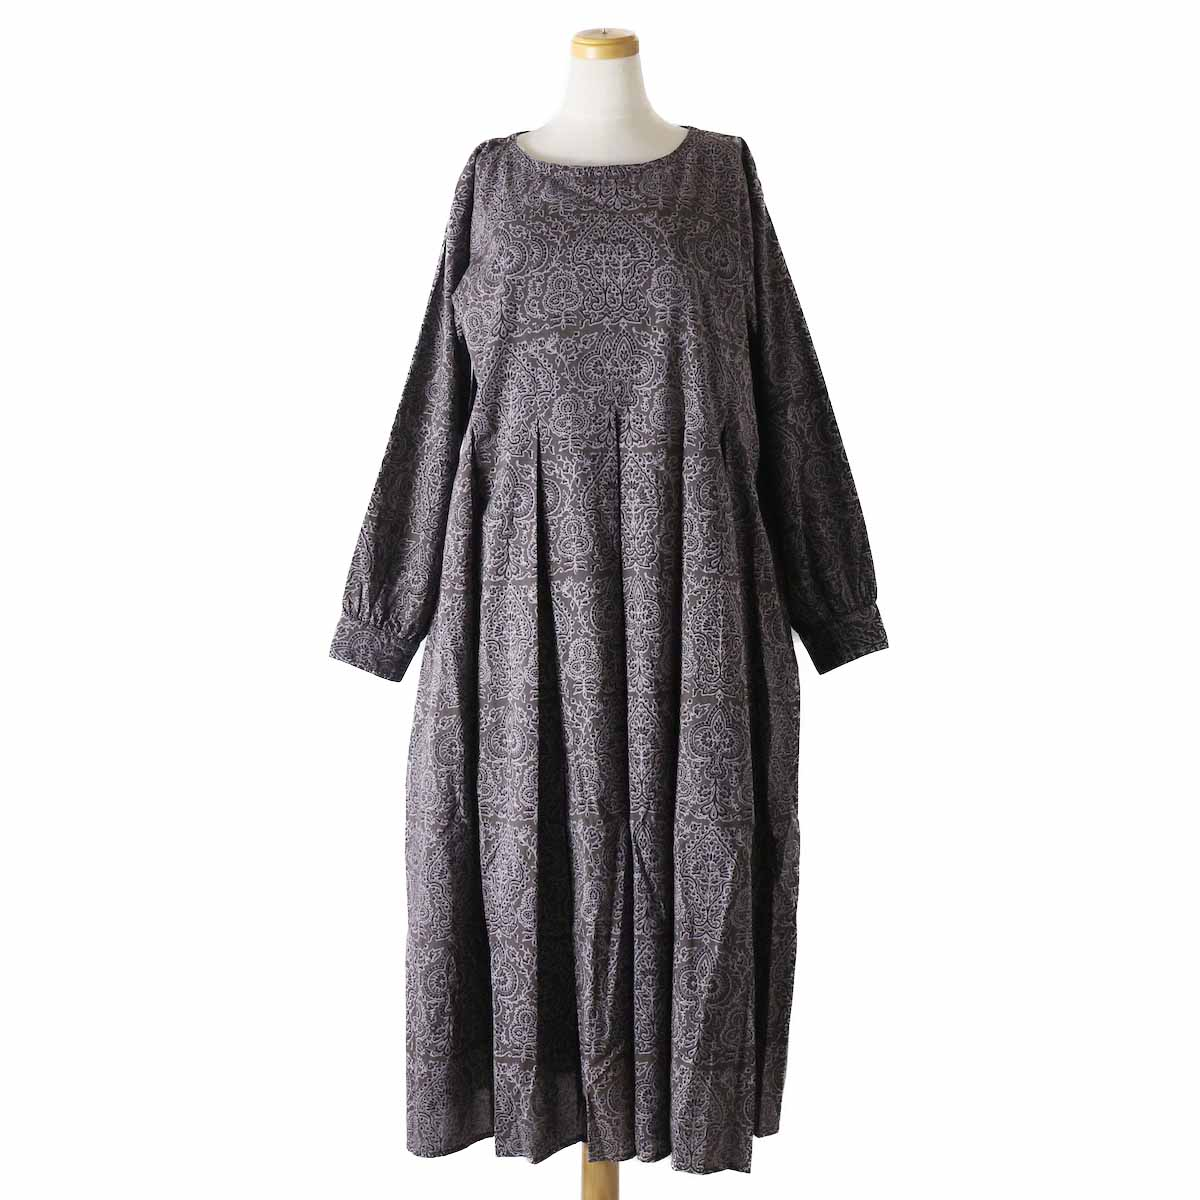 maison de soil / INMDS18633 TREE PRINT INVERTED PLEATS DRESS -CHARCOAL GREY PRINT